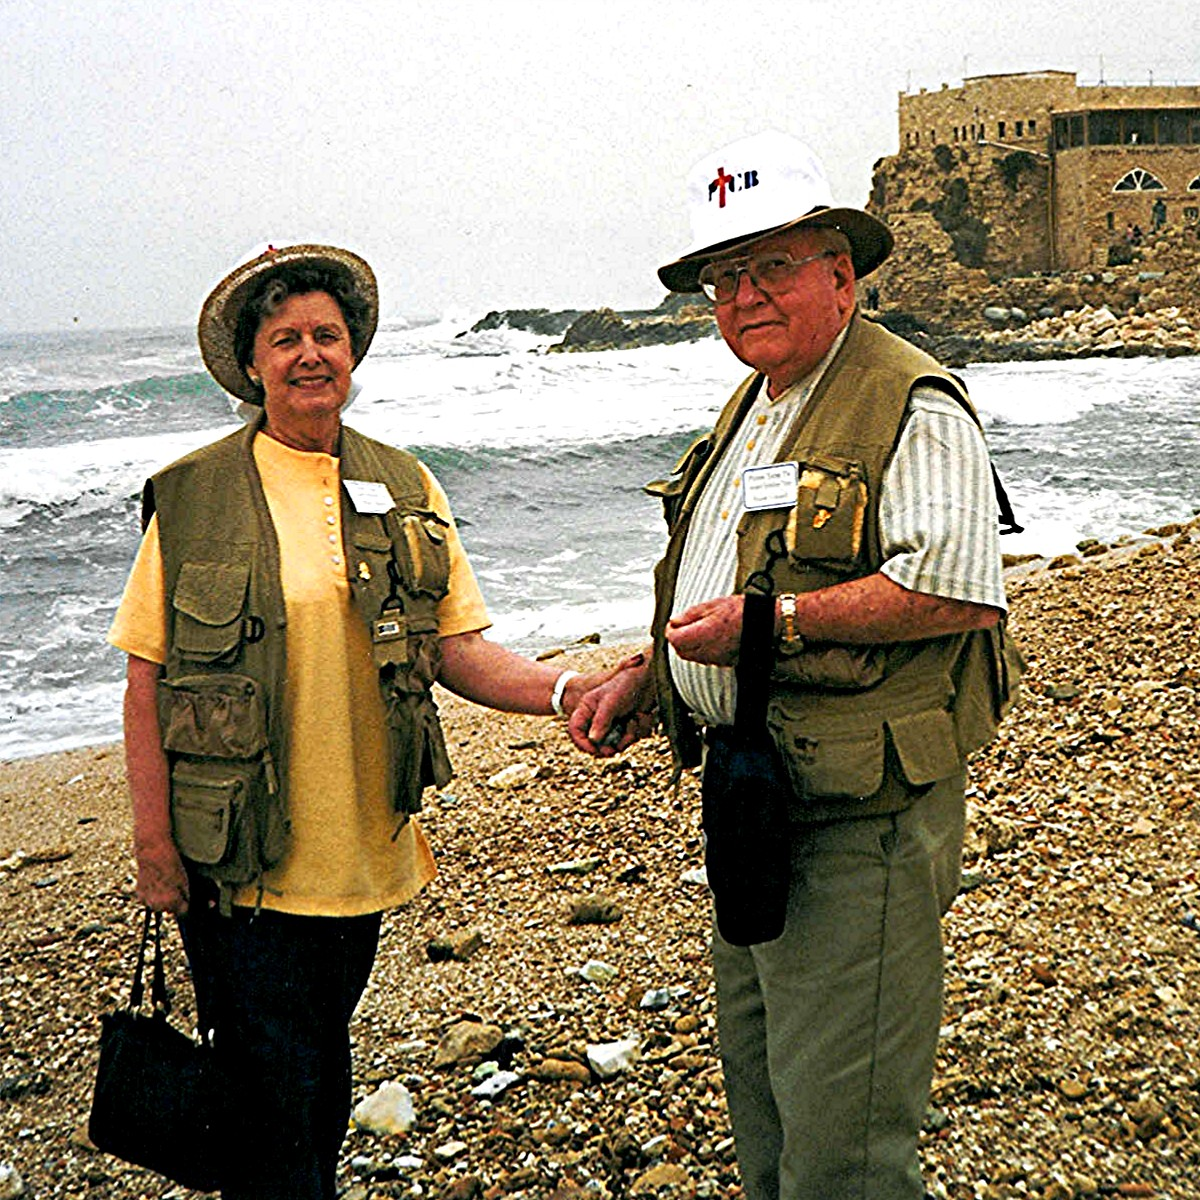 Frank Conard with his wife Billie Faye Waller Conard in Israel at Caesarea Phillipi in April 1998